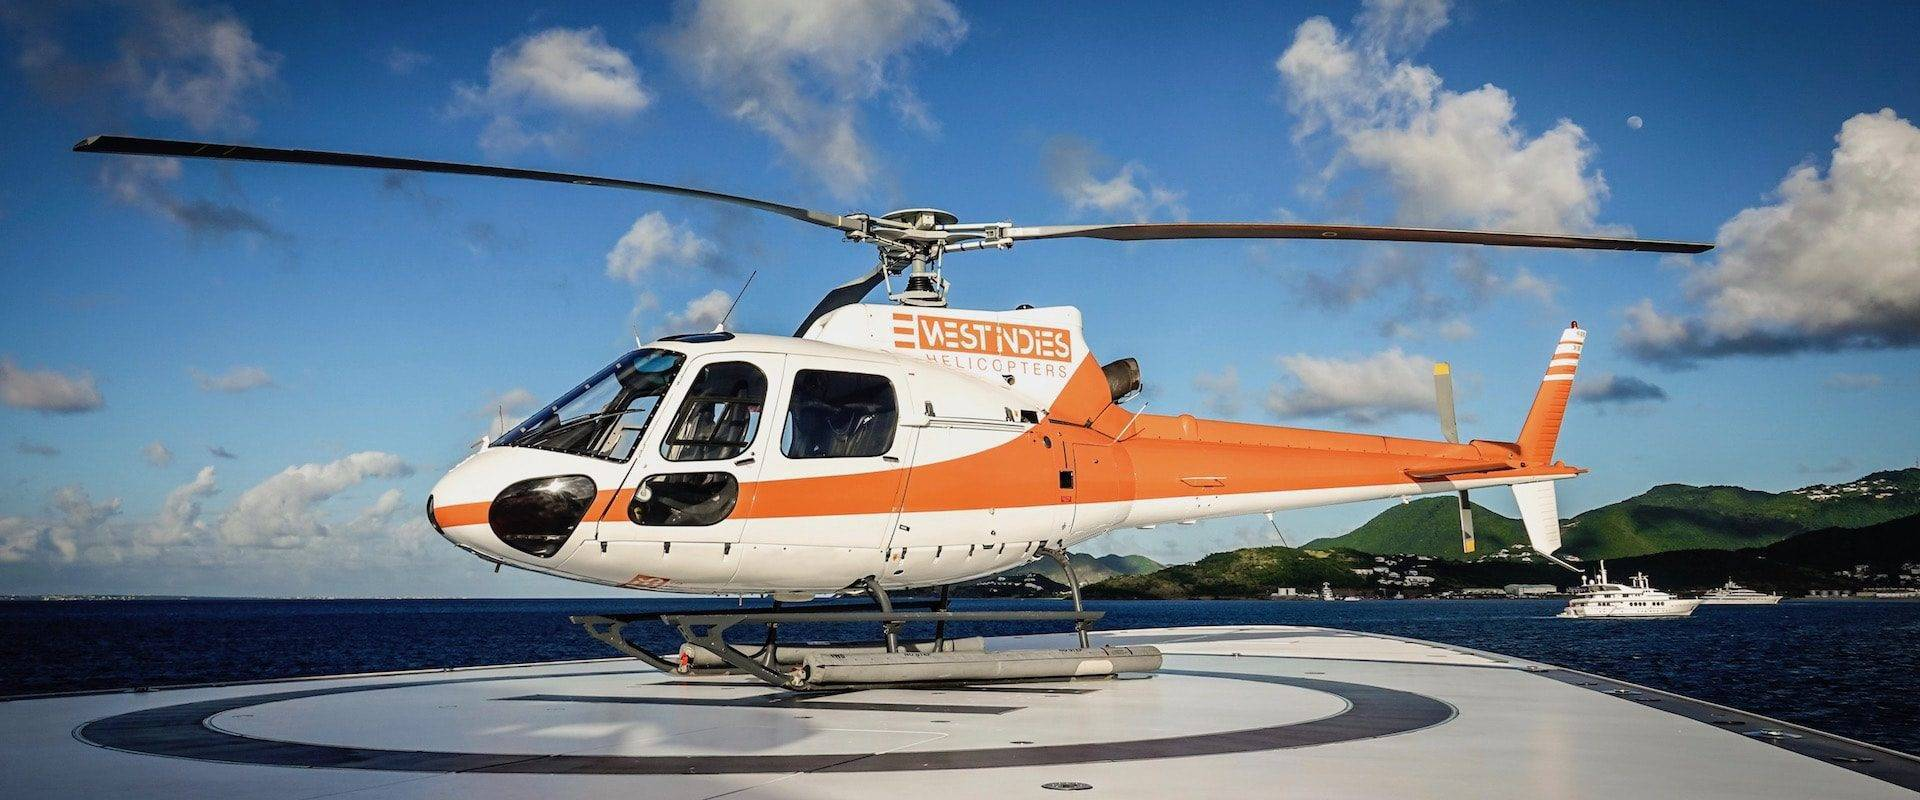 2-West-Indies-Helicoptere-St-Barth